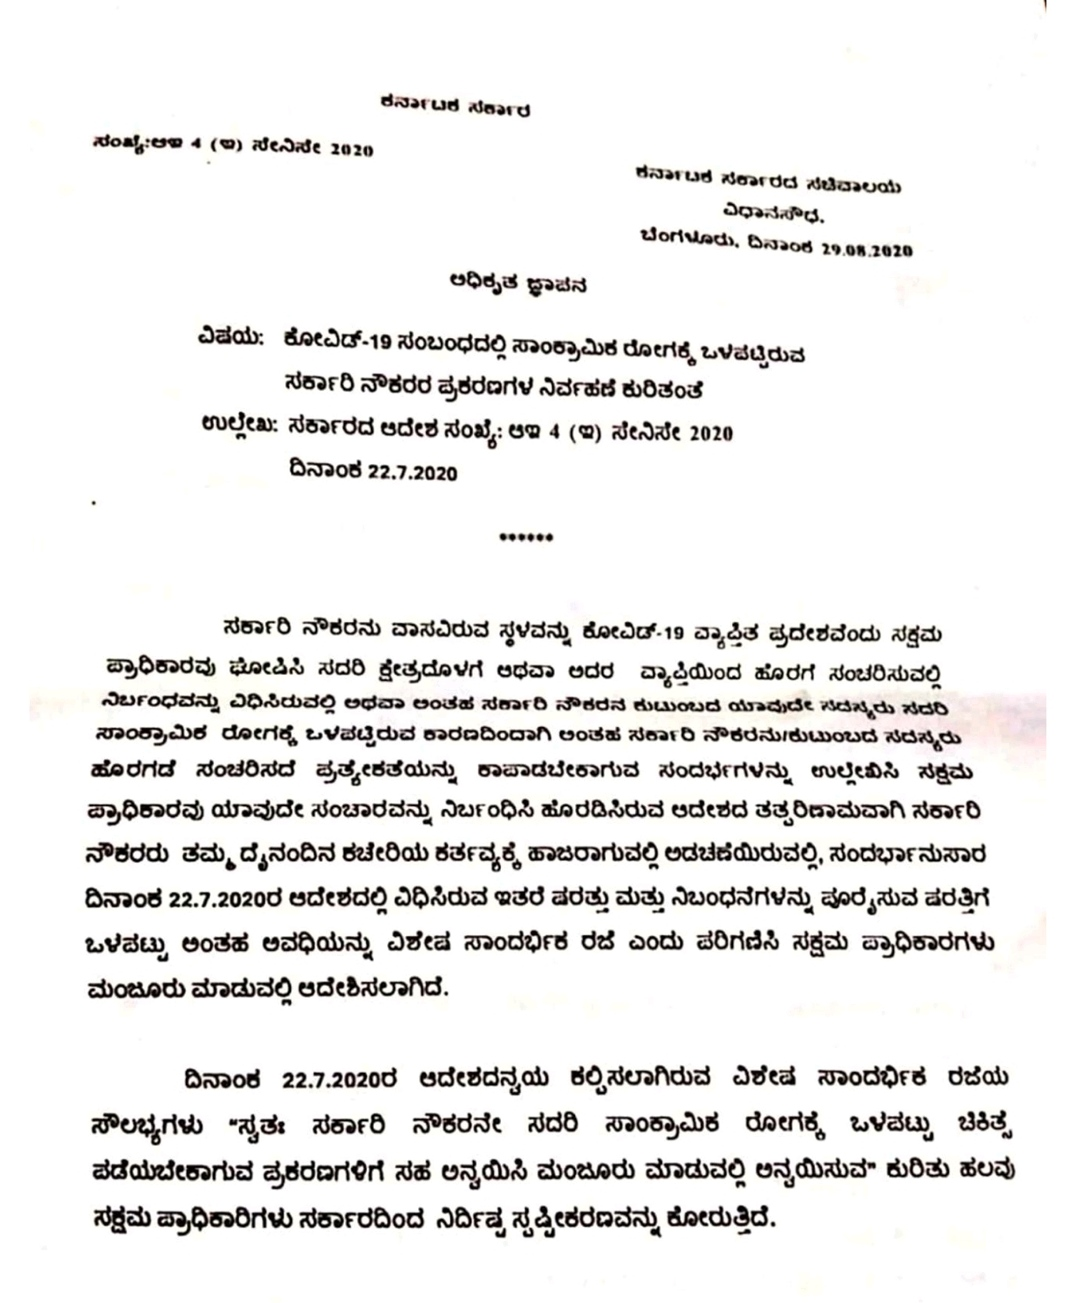 Directive on handling cases of government employees who are infected with Kovid-19